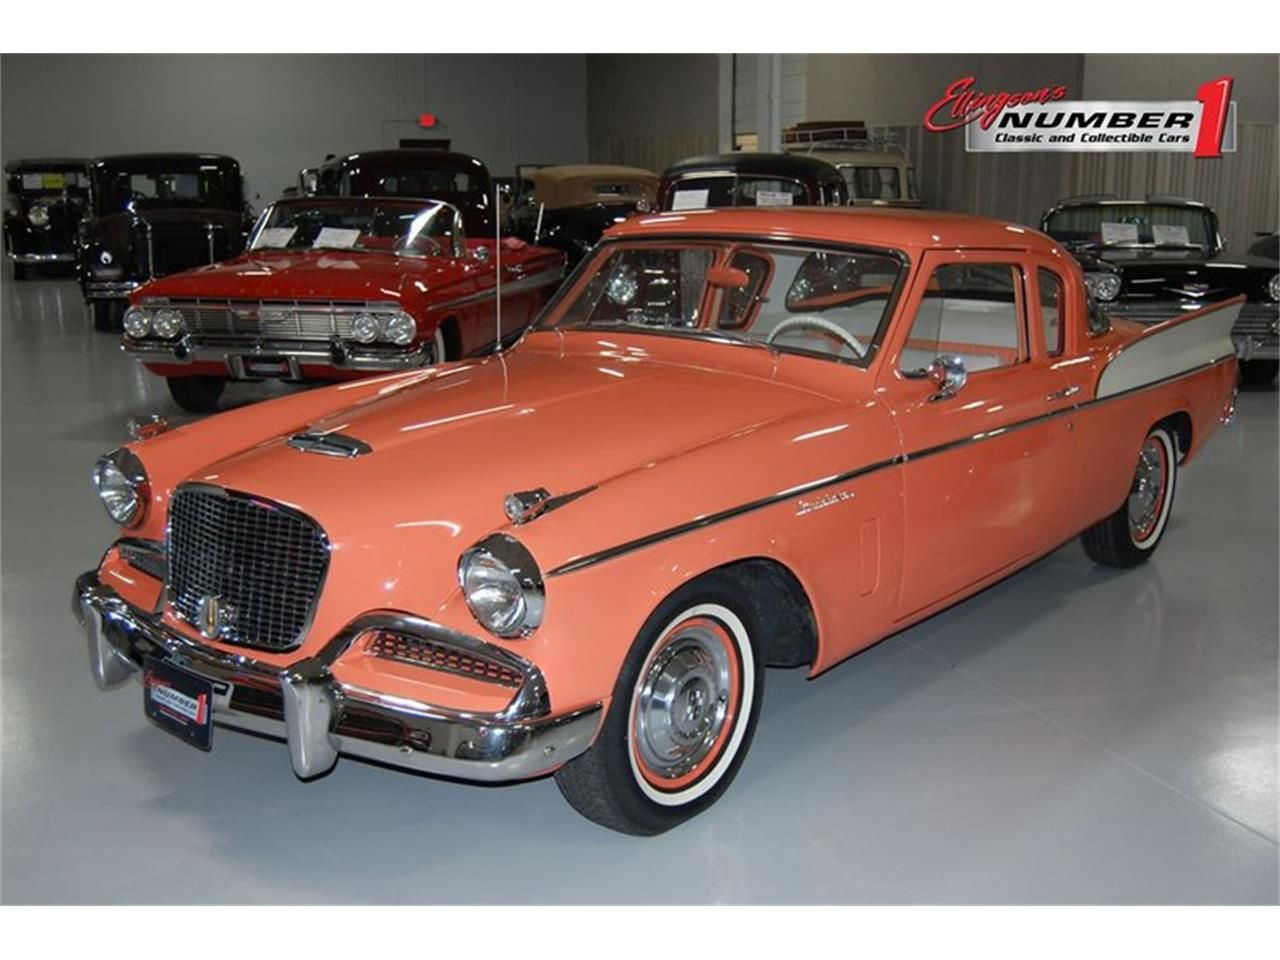 1958 Studebaker Silver Hawk For Sale Classiccars Com Cc 1329259 In 2020 Studebaker Vintage Cars For Sale Aftermarket Air Conditioning